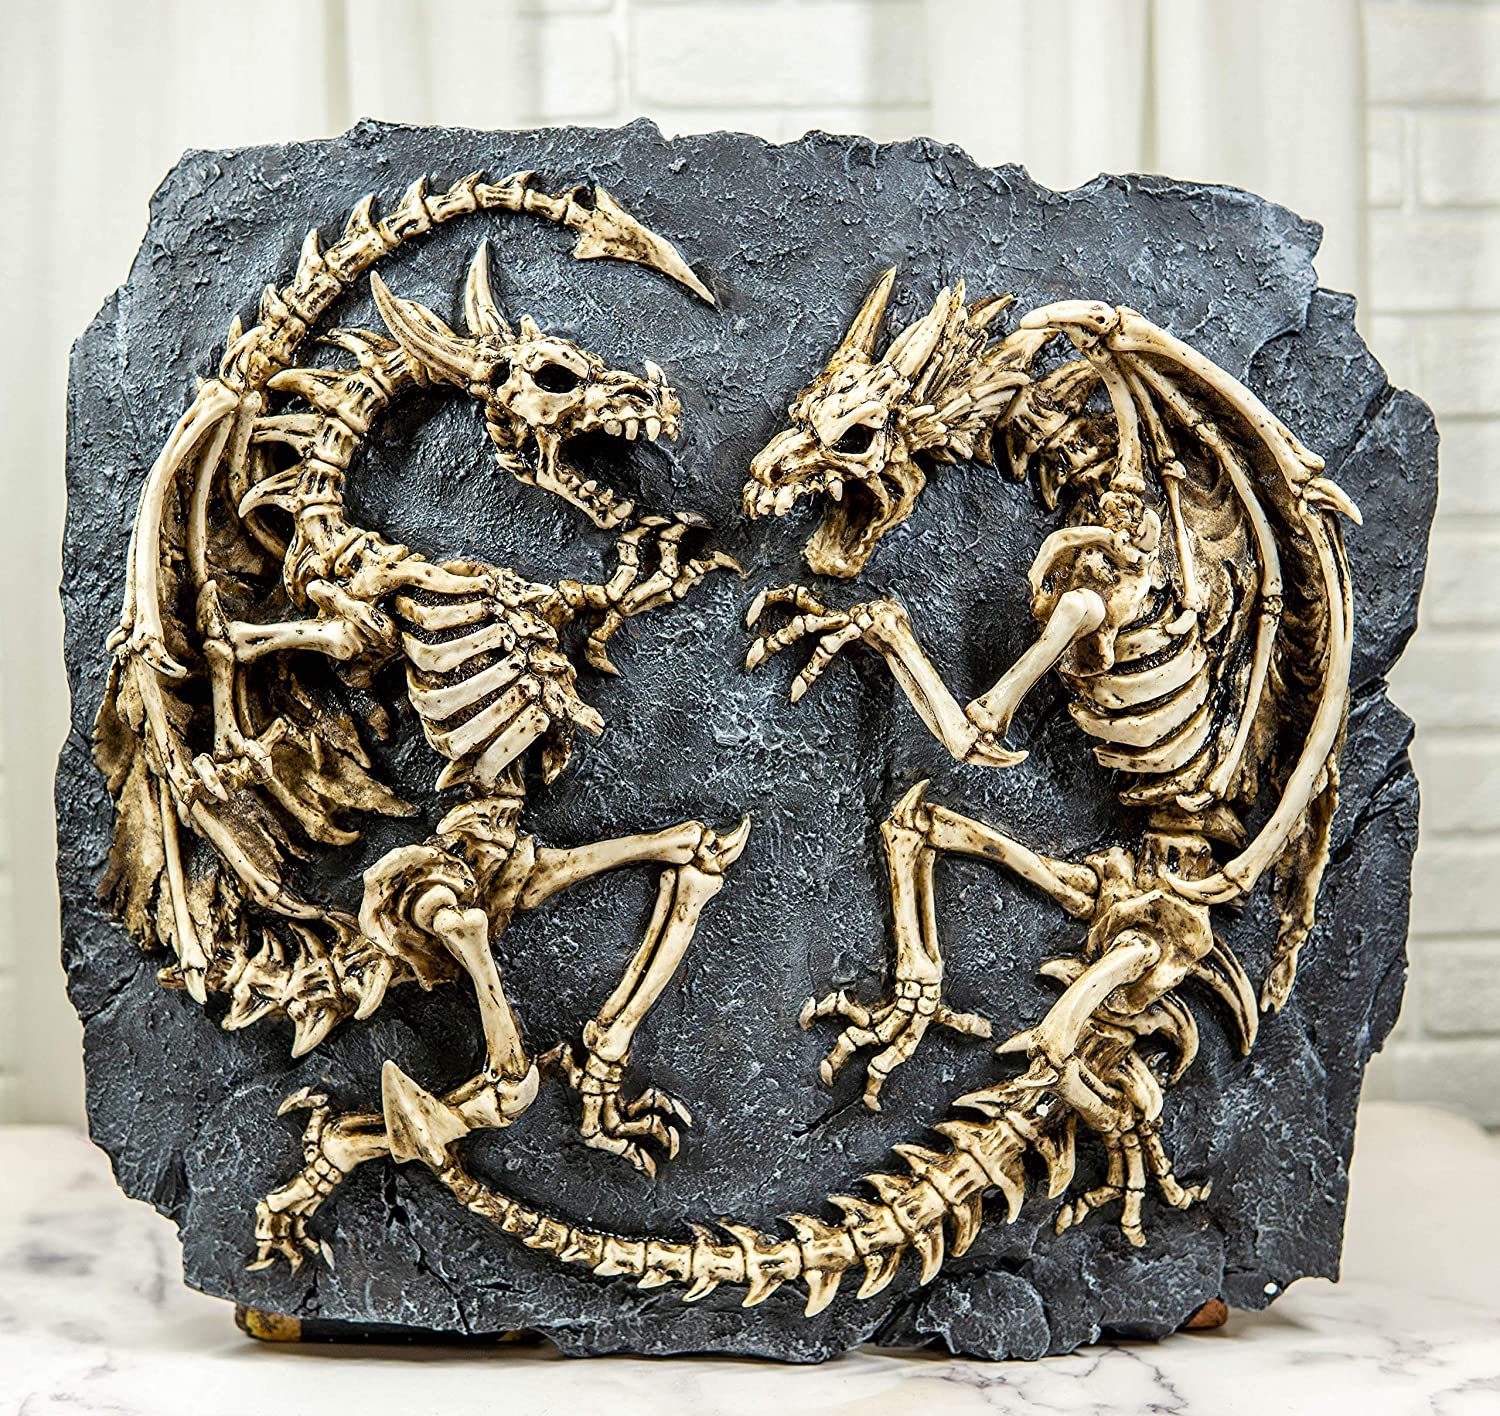 Ebros Gift Faux Fossil Rock With 2 Fighting Skeletal Dragons Skeletons Wall Decor Plaque Medieval Renaissance Legends Dragon Ossuary Macabre Hanging Sculpture